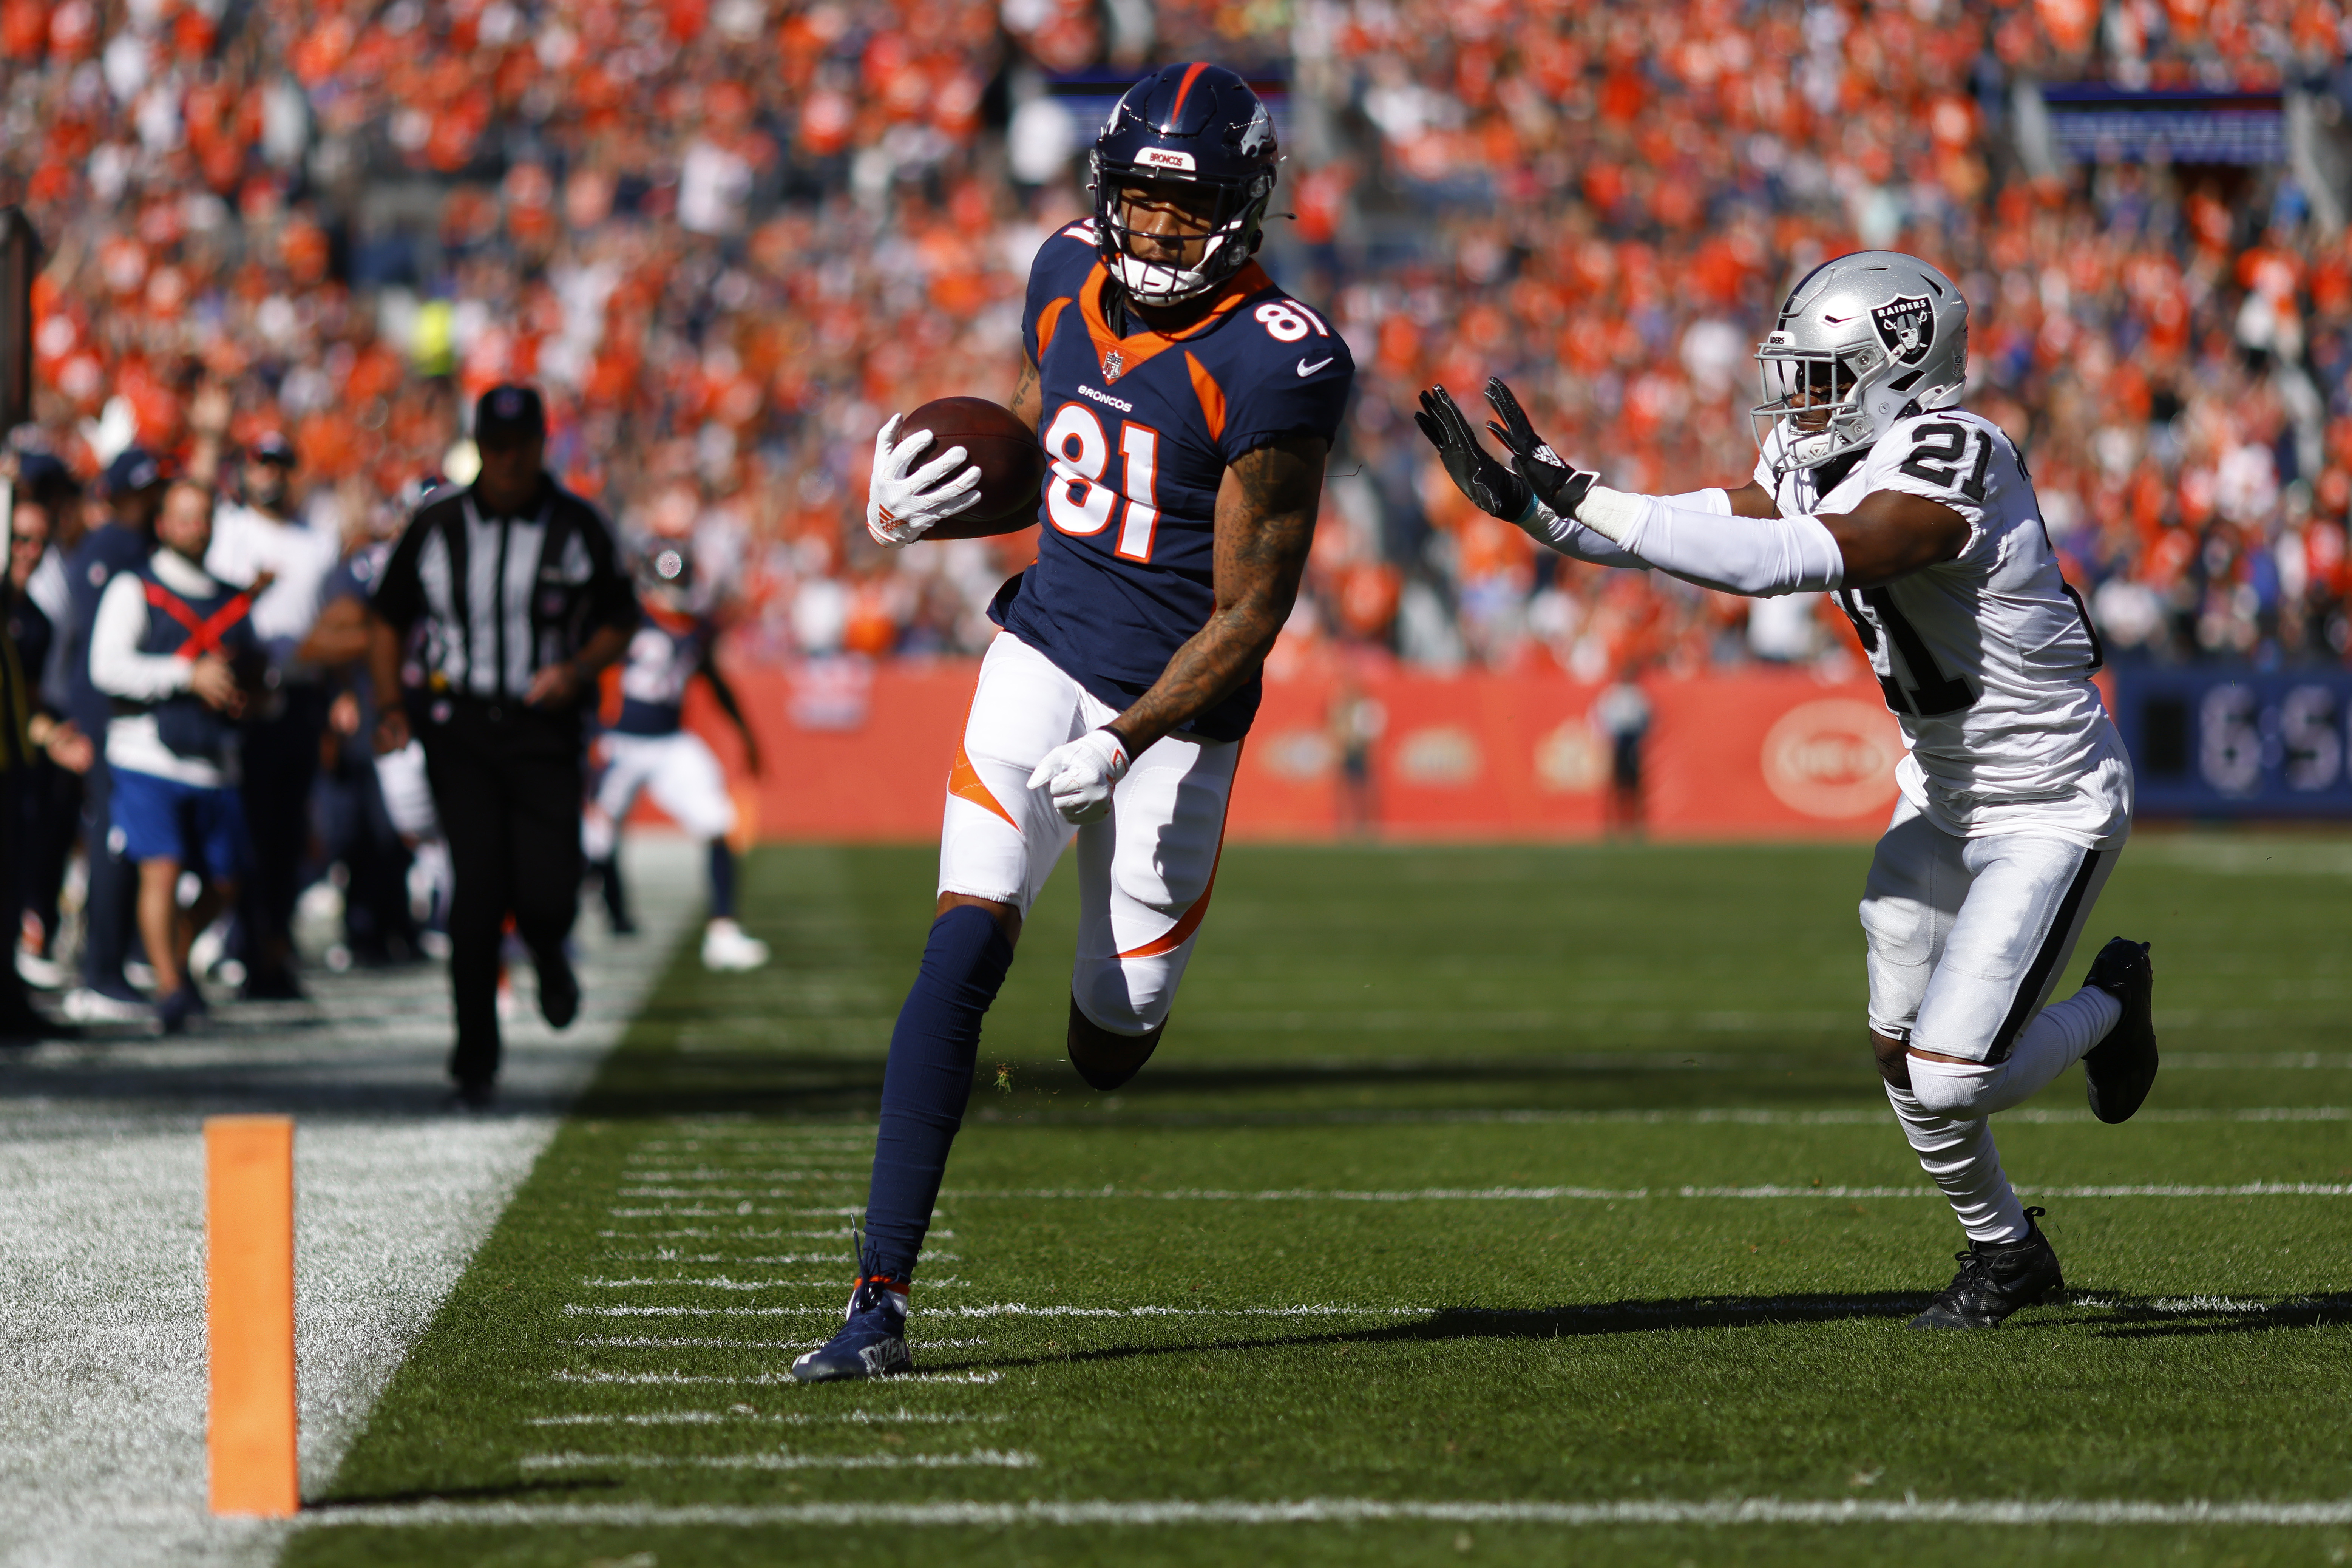 Tim Patrick #81 of the Denver Broncos scores a touchdown against Amik Robertson #21 of the Las Vegas Raiders during the first quarter at Empower Field At Mile High on October 17, 2021 in Denver, Colorado.